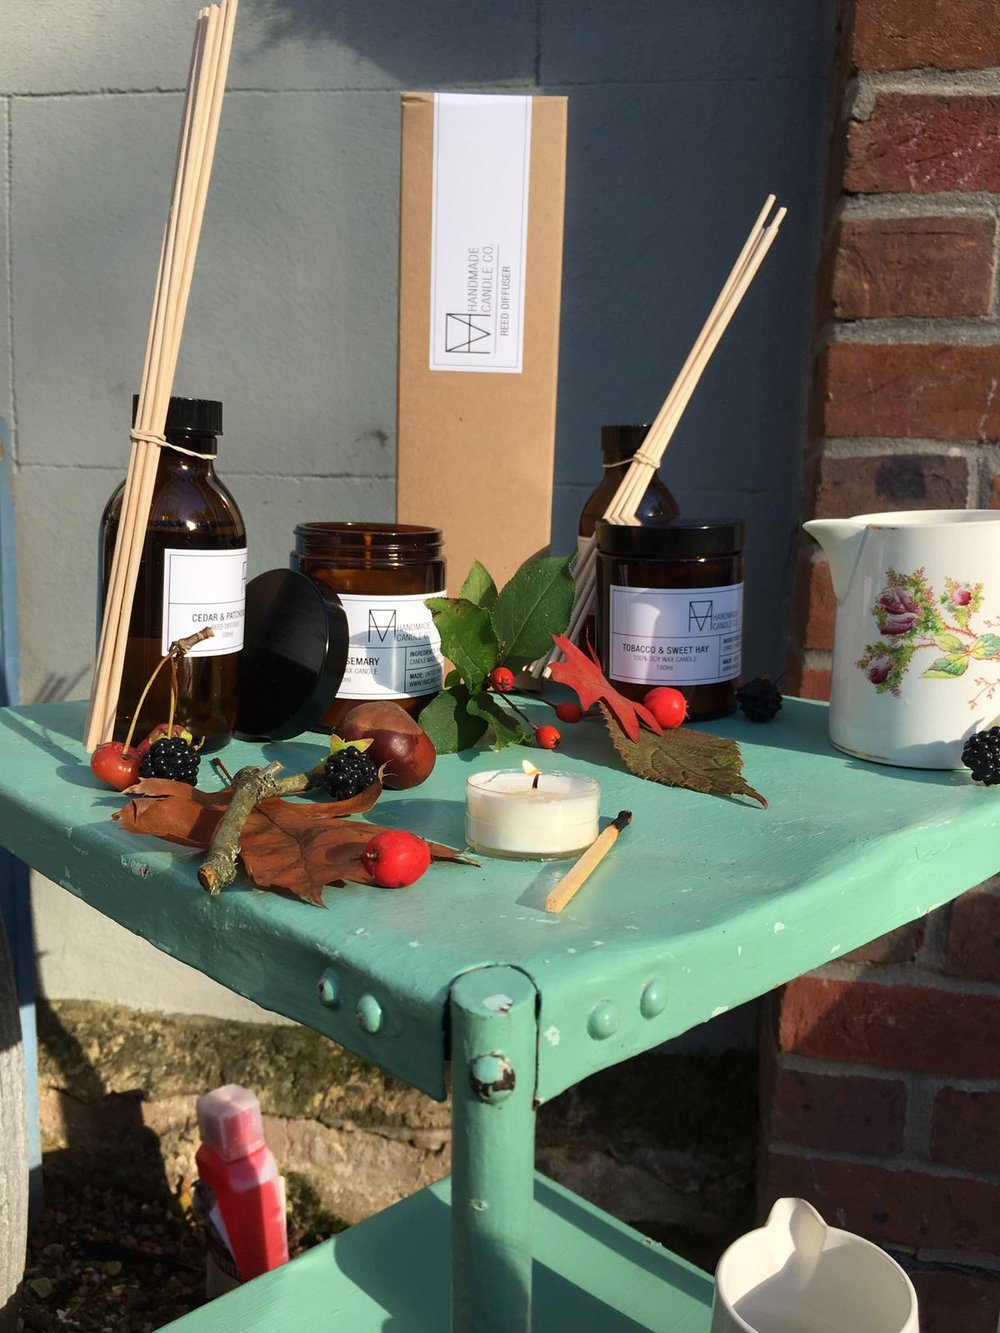 The Handmade Candle Co candles and diffusers